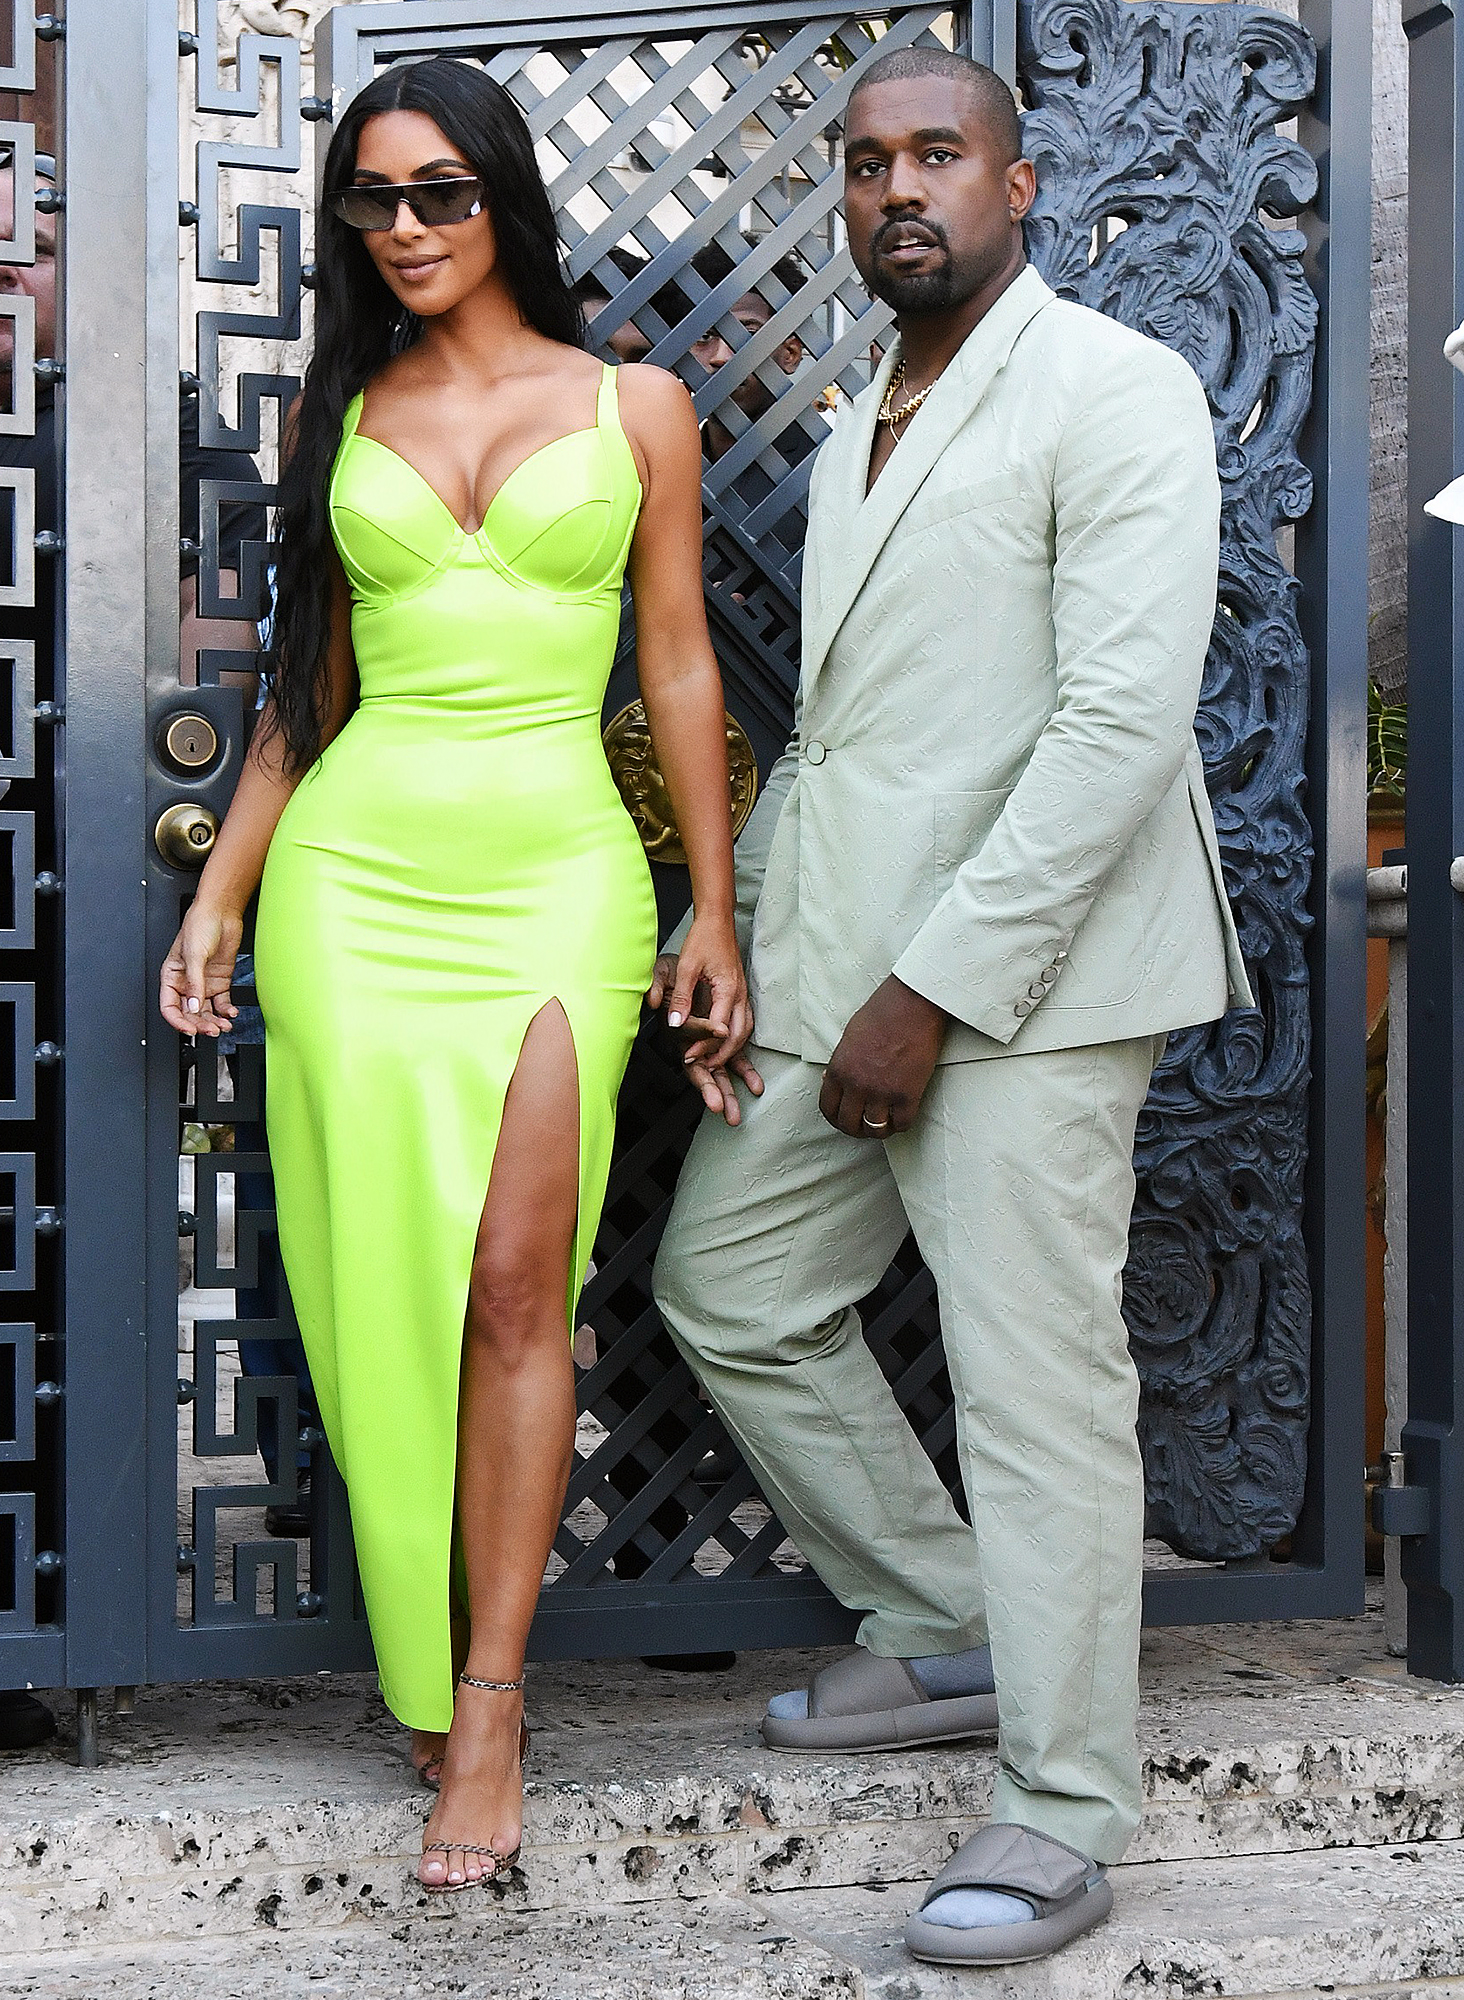 Kim Kardashian Kanye West 2 Chainz Wedding Ice Cream Date - The twosome made for a head-turning pair, with Kardashian, 37, in a neon green bodycon ensemble and West, 41, in a dapper gray Louis Vuitton suit and a pair of Yeezy slides.